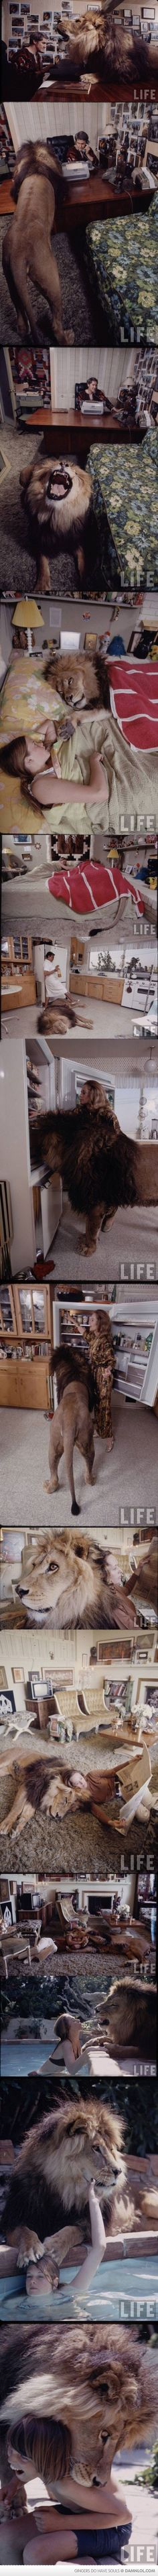 Living with a lion (click on image to see full)